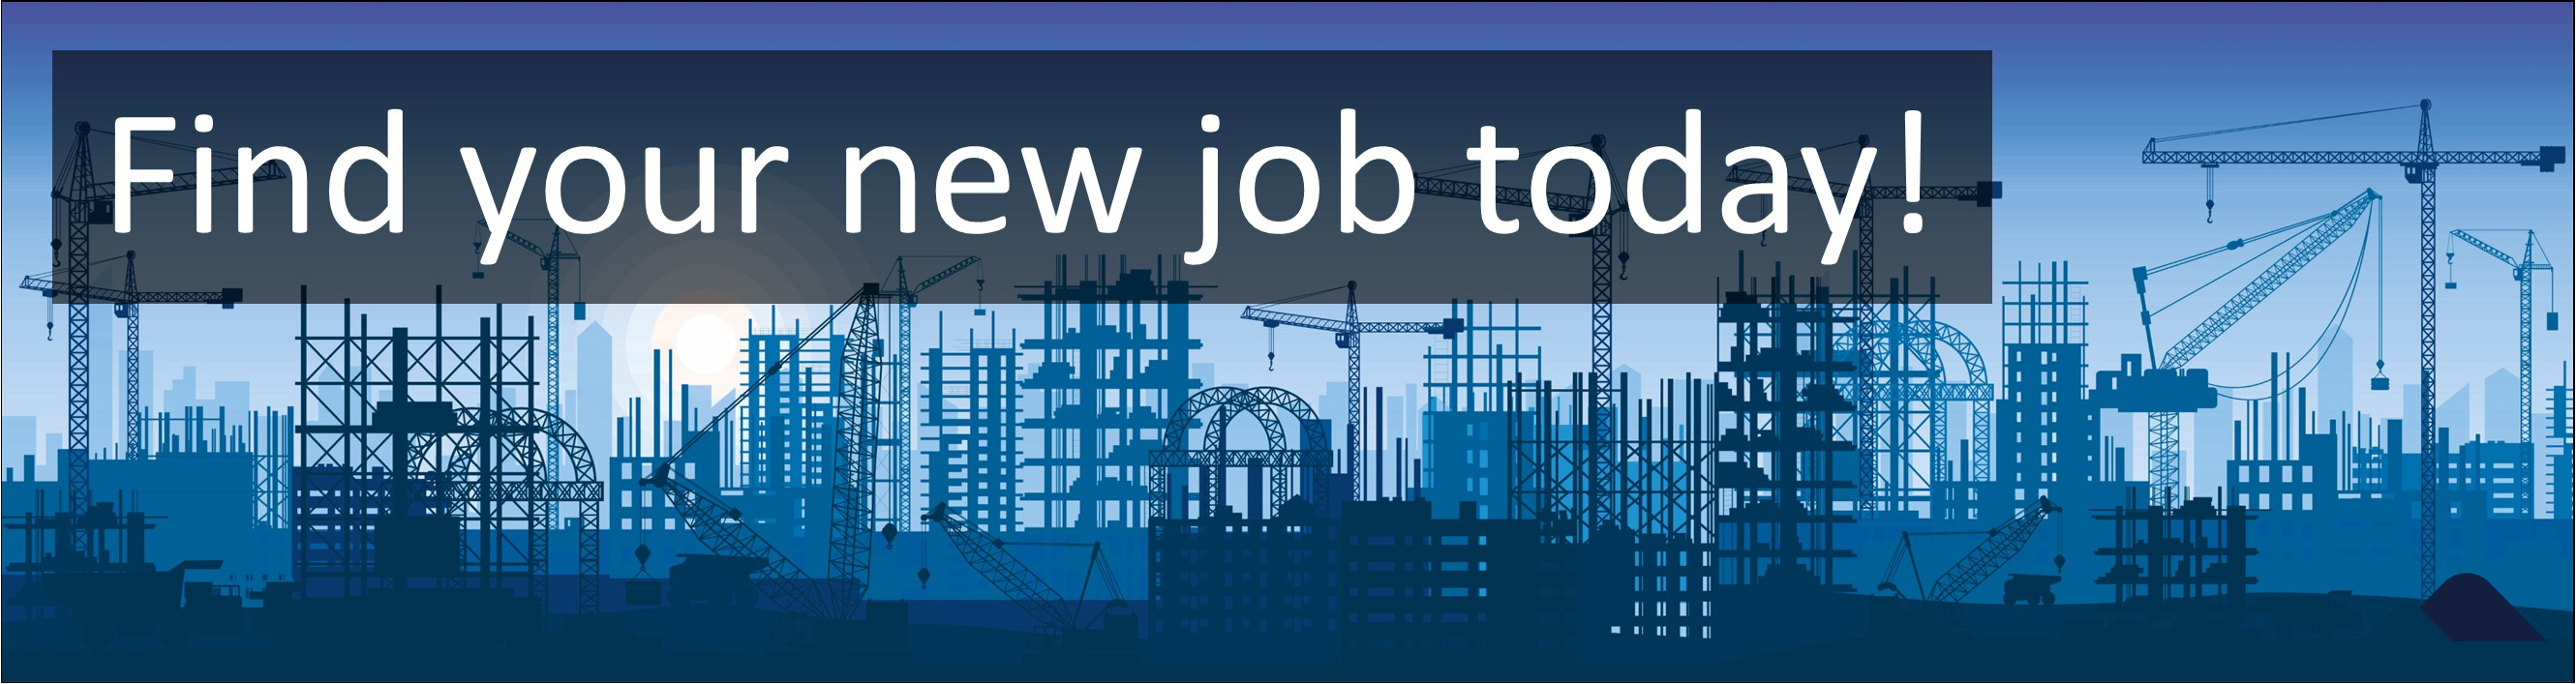 Construction & Trades Jobs. Mechanic / Motor Vehicle Technician / MOT Tester Jobs, Careers & Vacancies in Swansea, Wales Advertised by AWD online – Multi-Job Board Advertising and CV Sourcing Recruitment Services